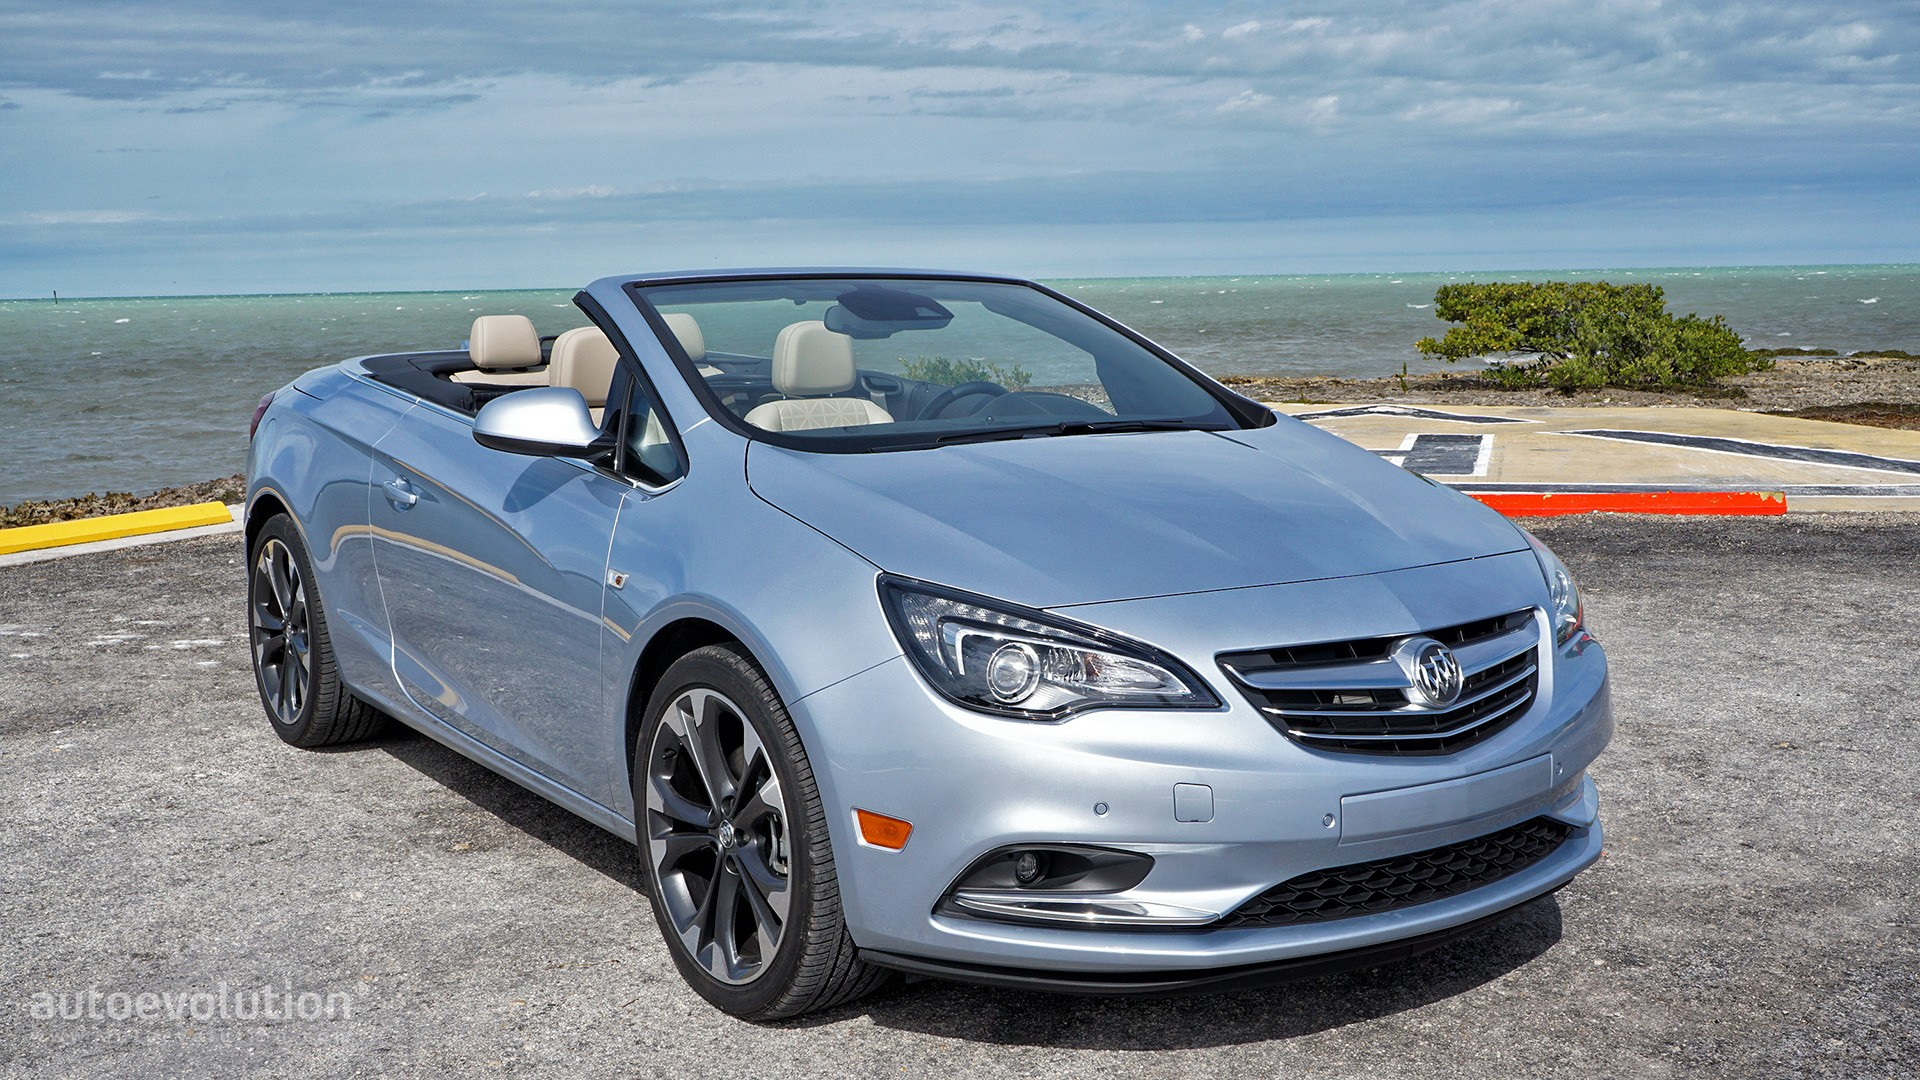 Driven Buick Cascada Convertible on 2016 Buick Enclave